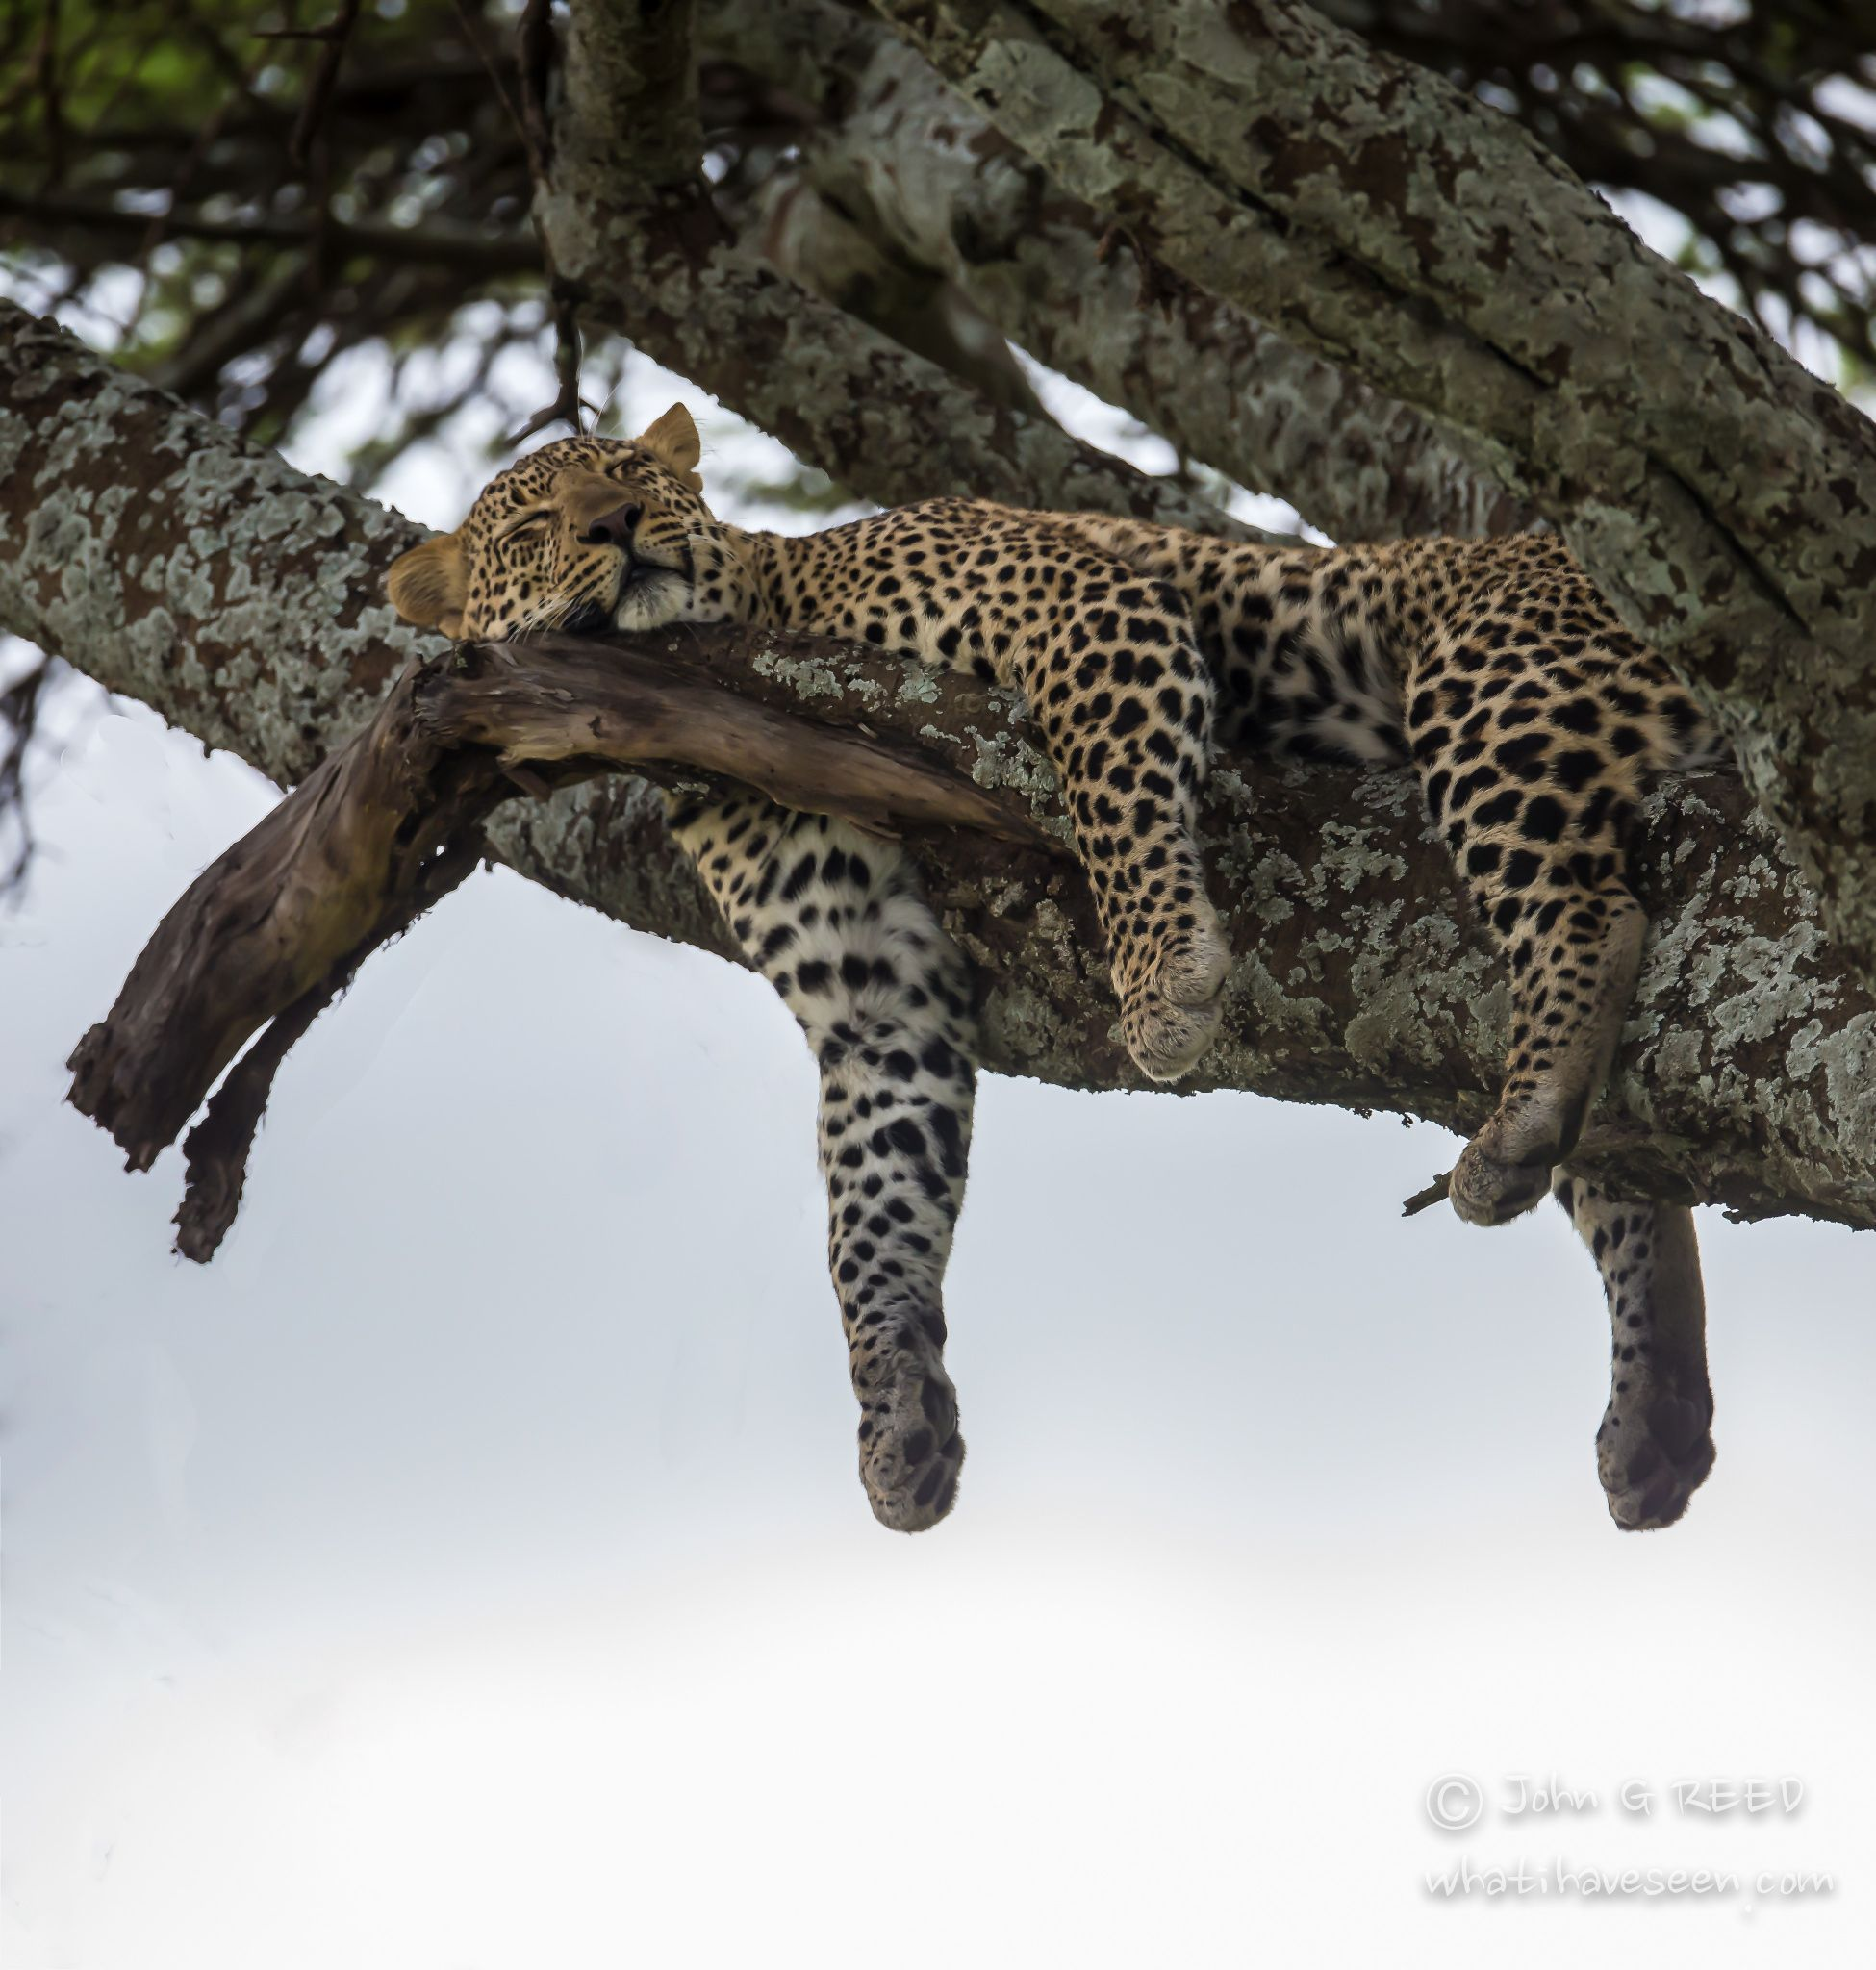 Cat nap time.   Leopard fast asleep without a care in the world. -